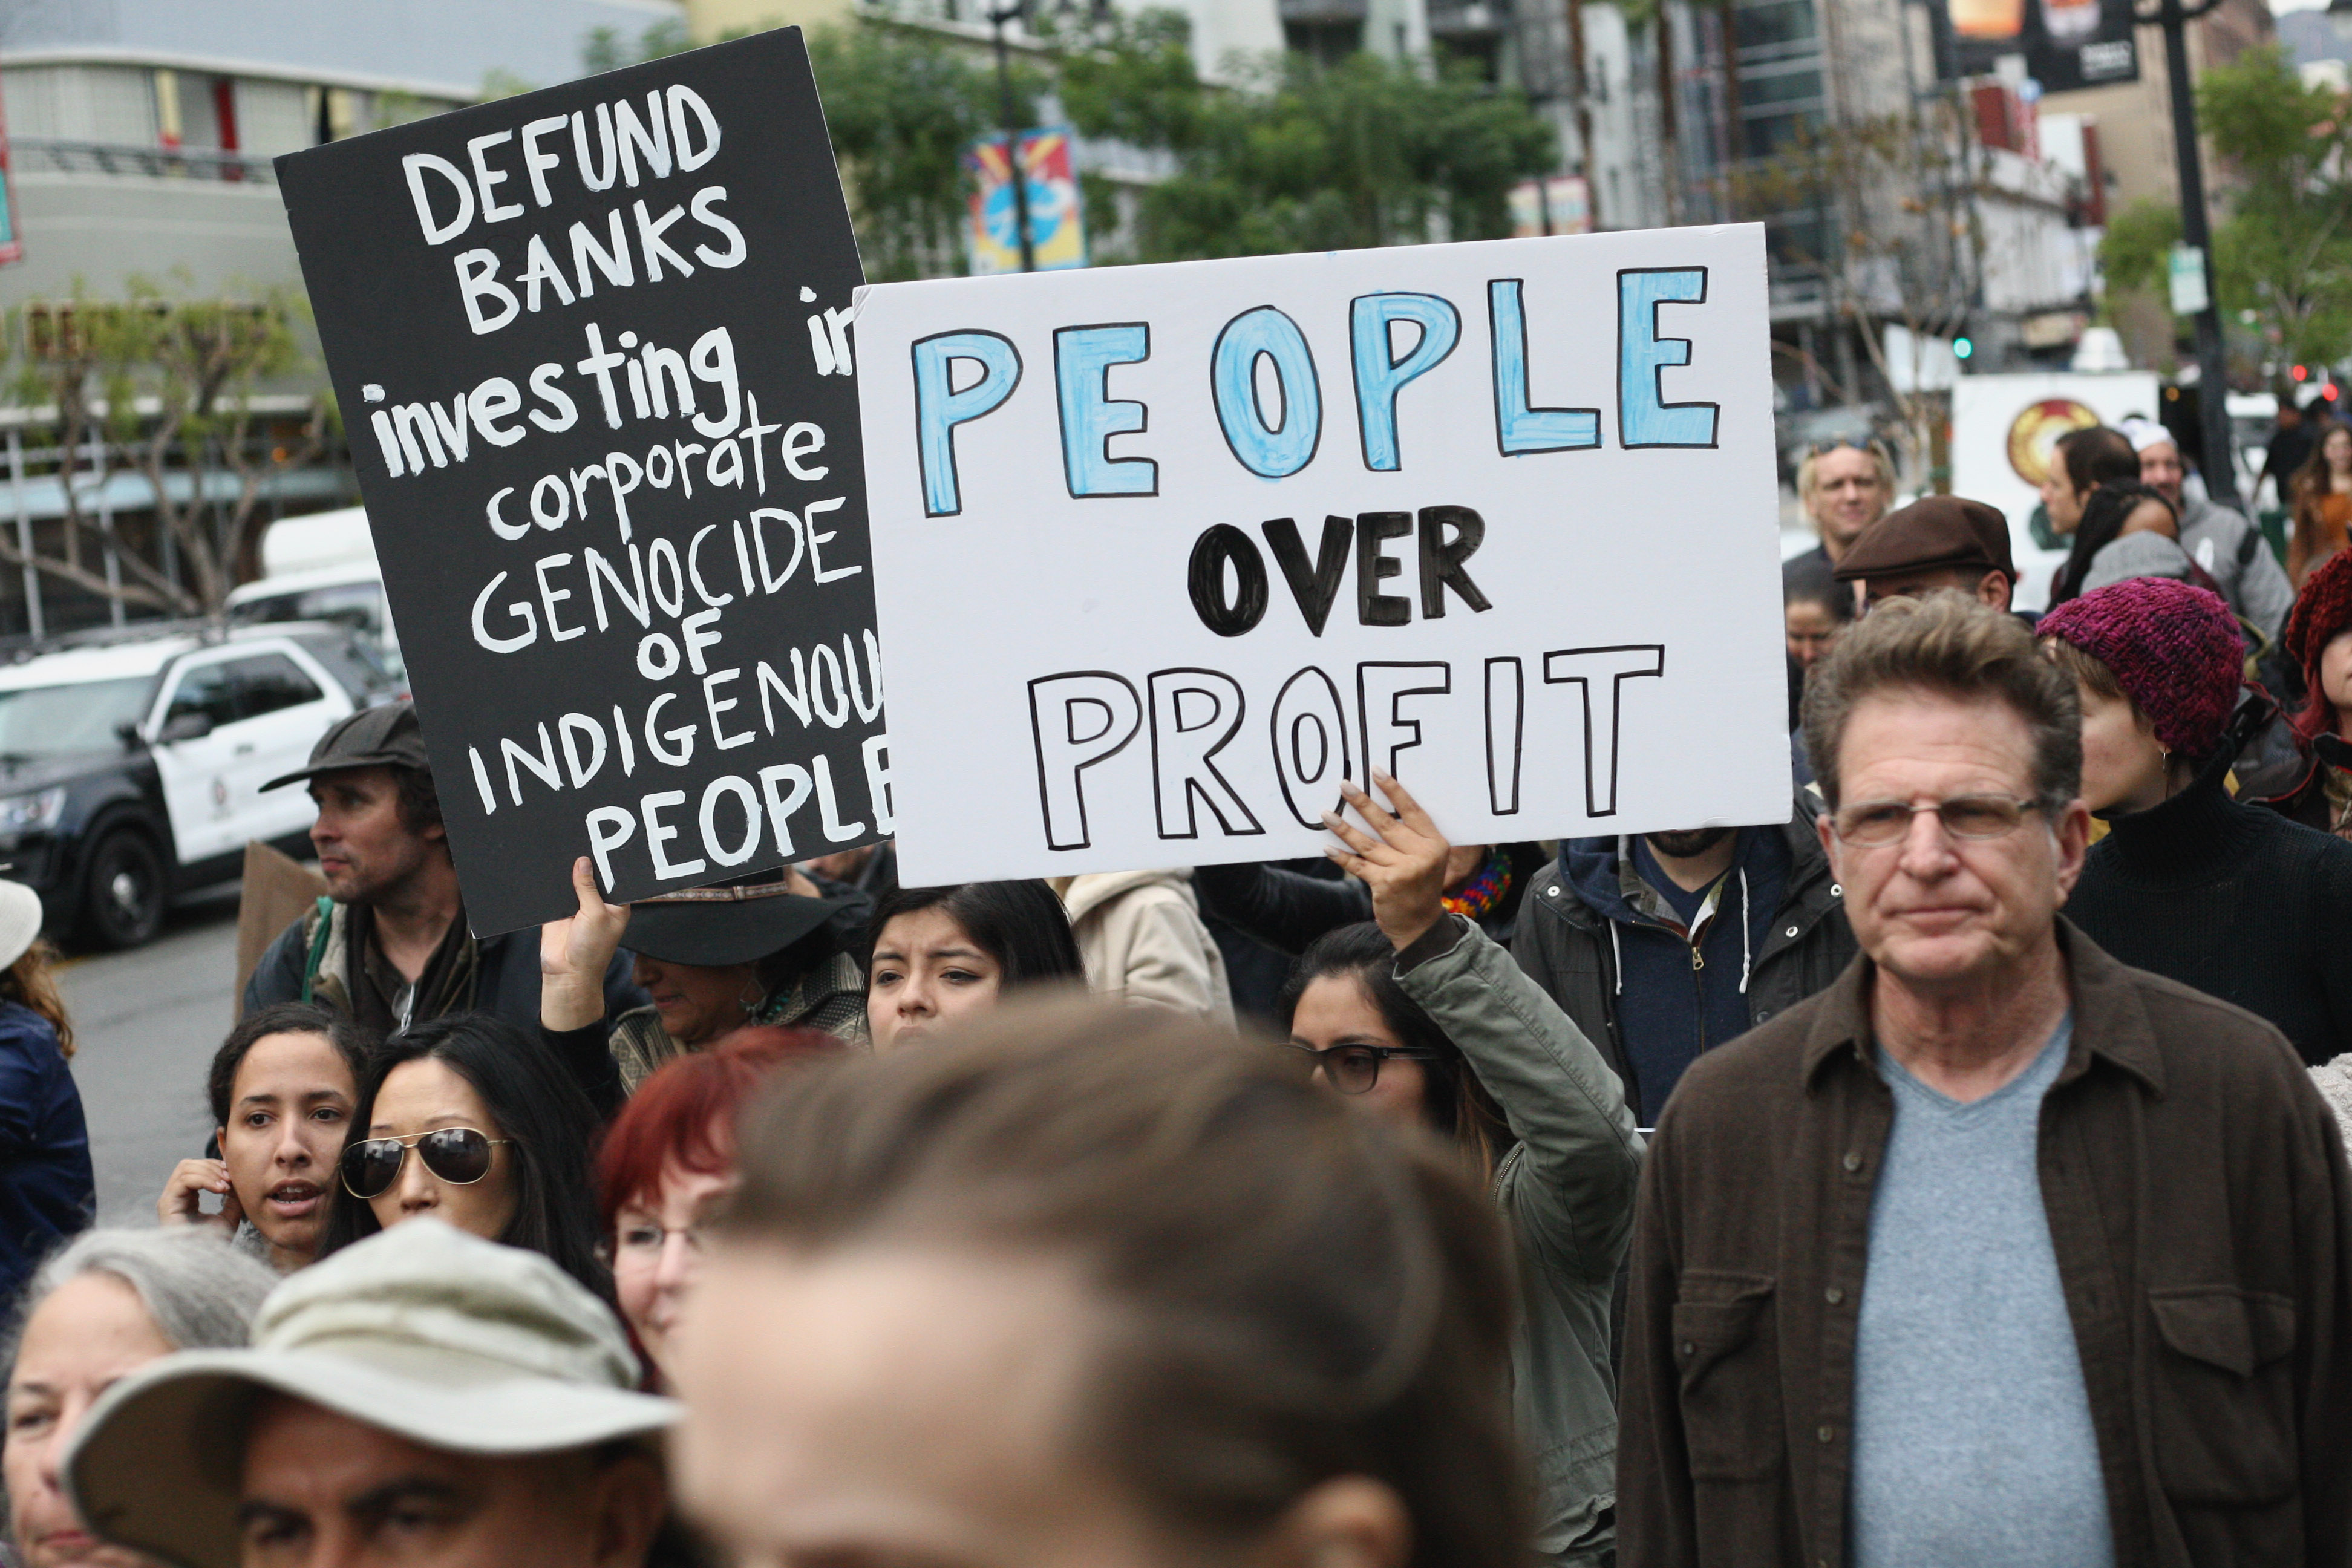 Protesters rally against Wells Fargo in solidarity with the people of Standing Rock in 2016.